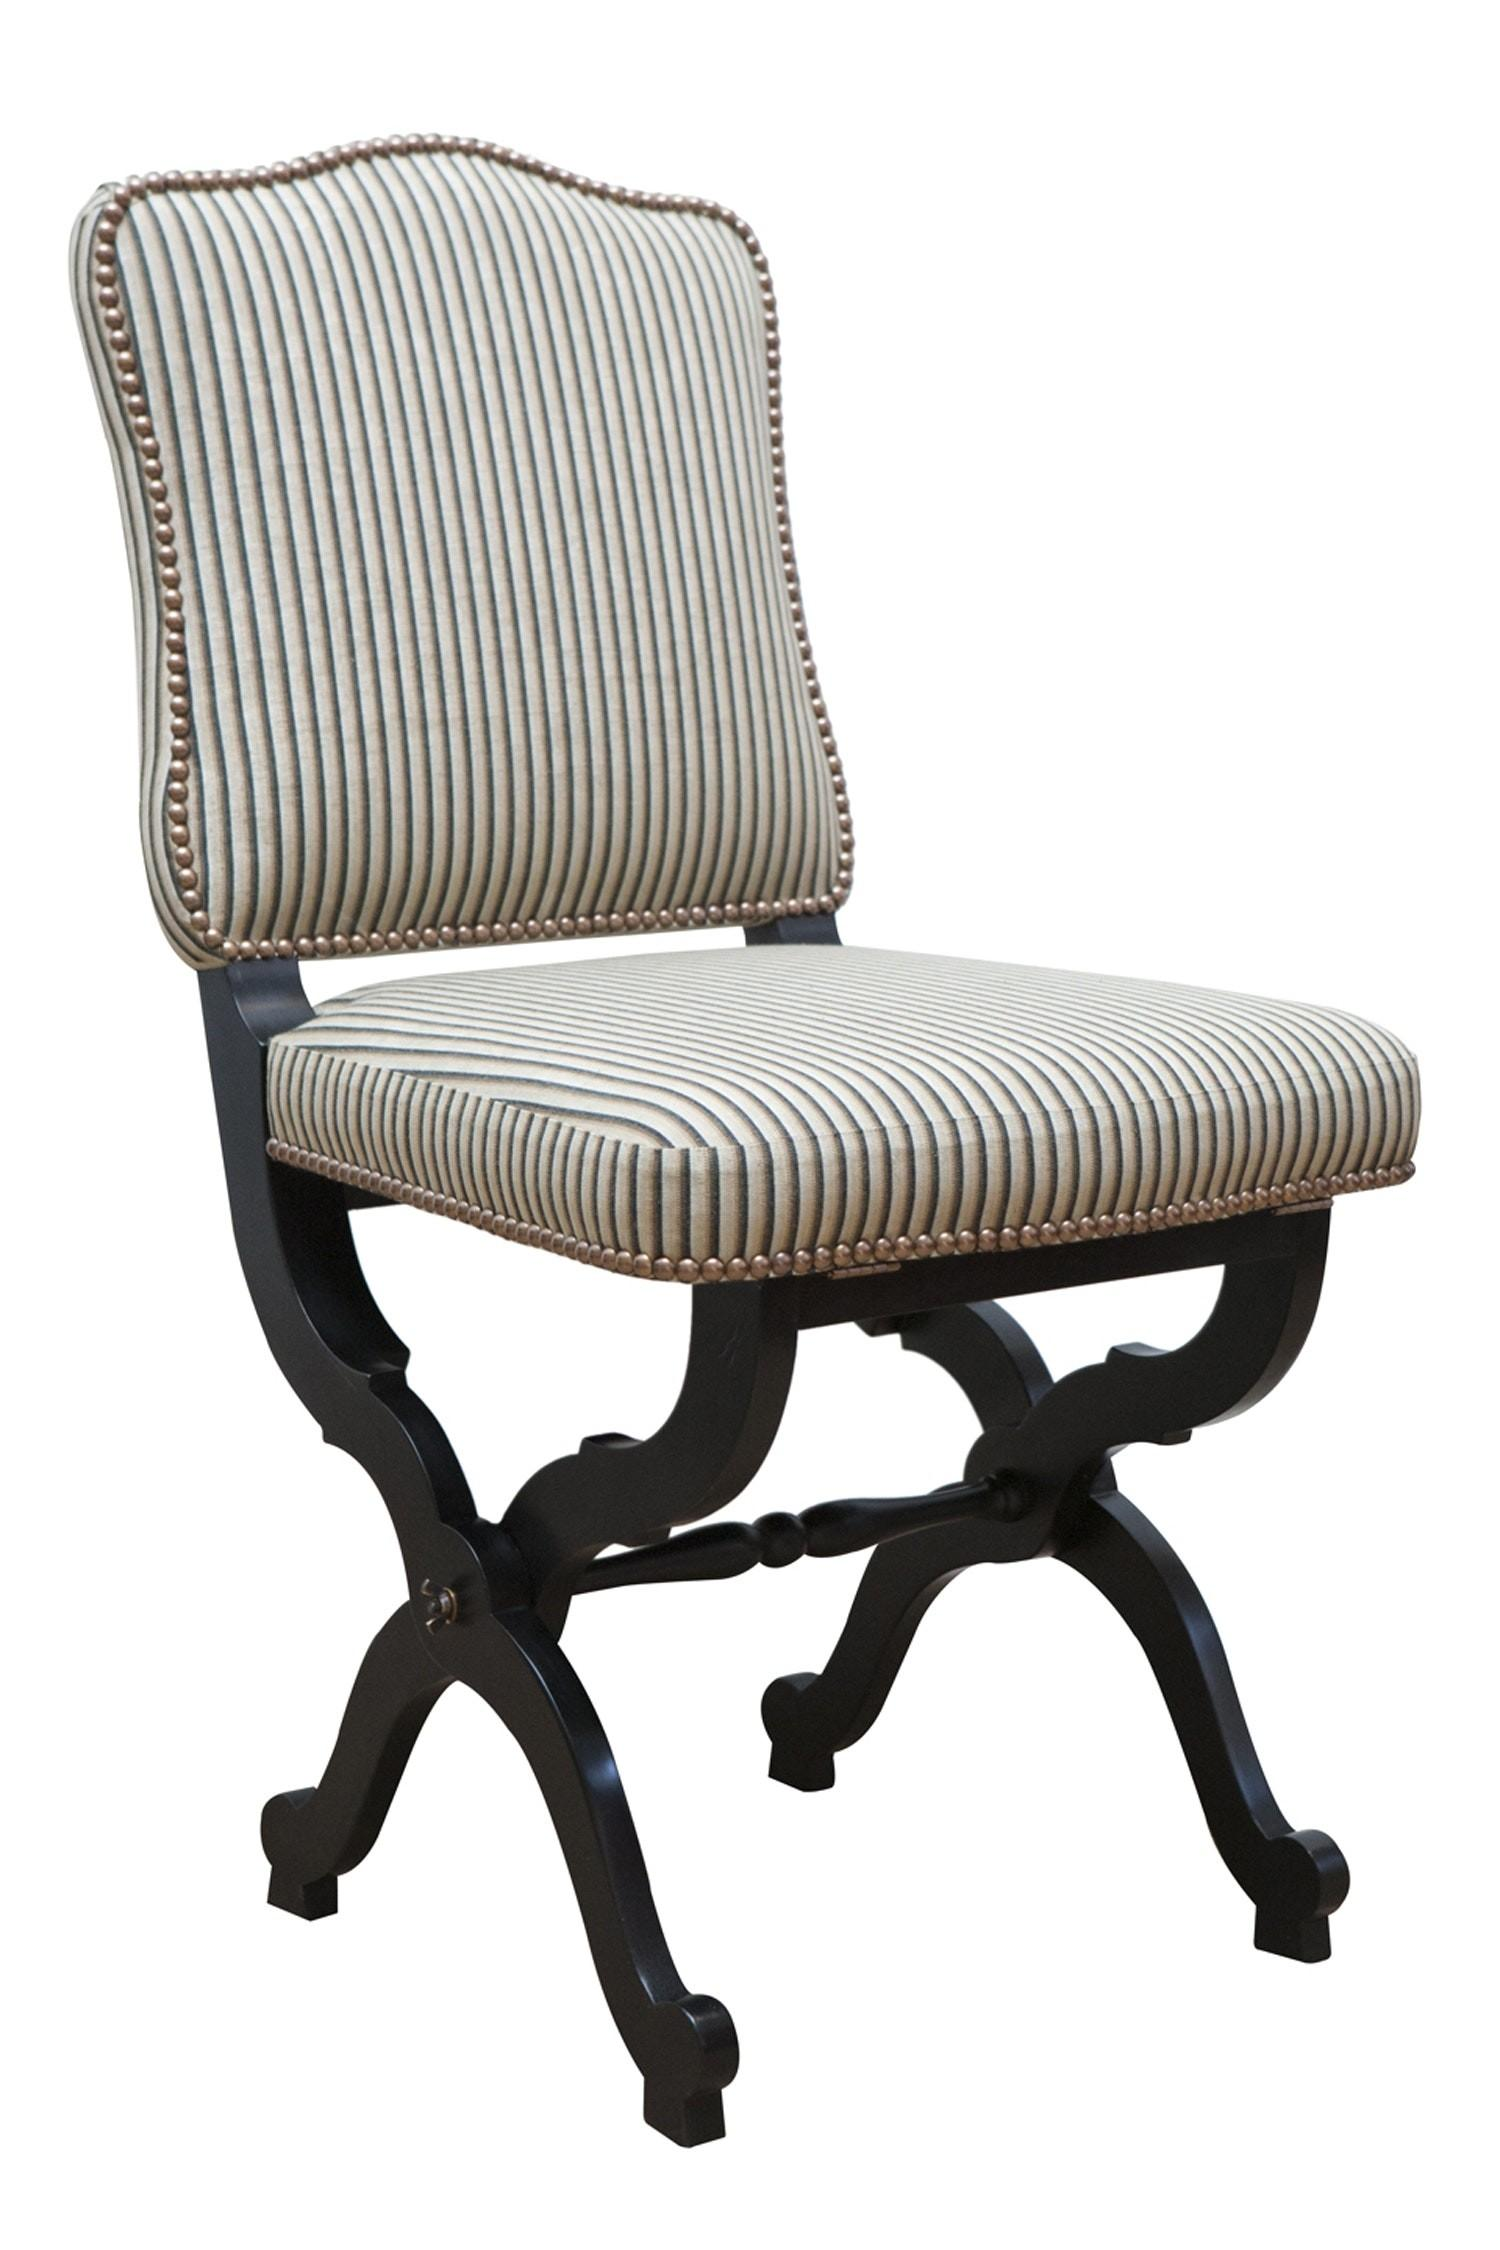 Maison Jansen Folding Chair Traditional Dining Chairs